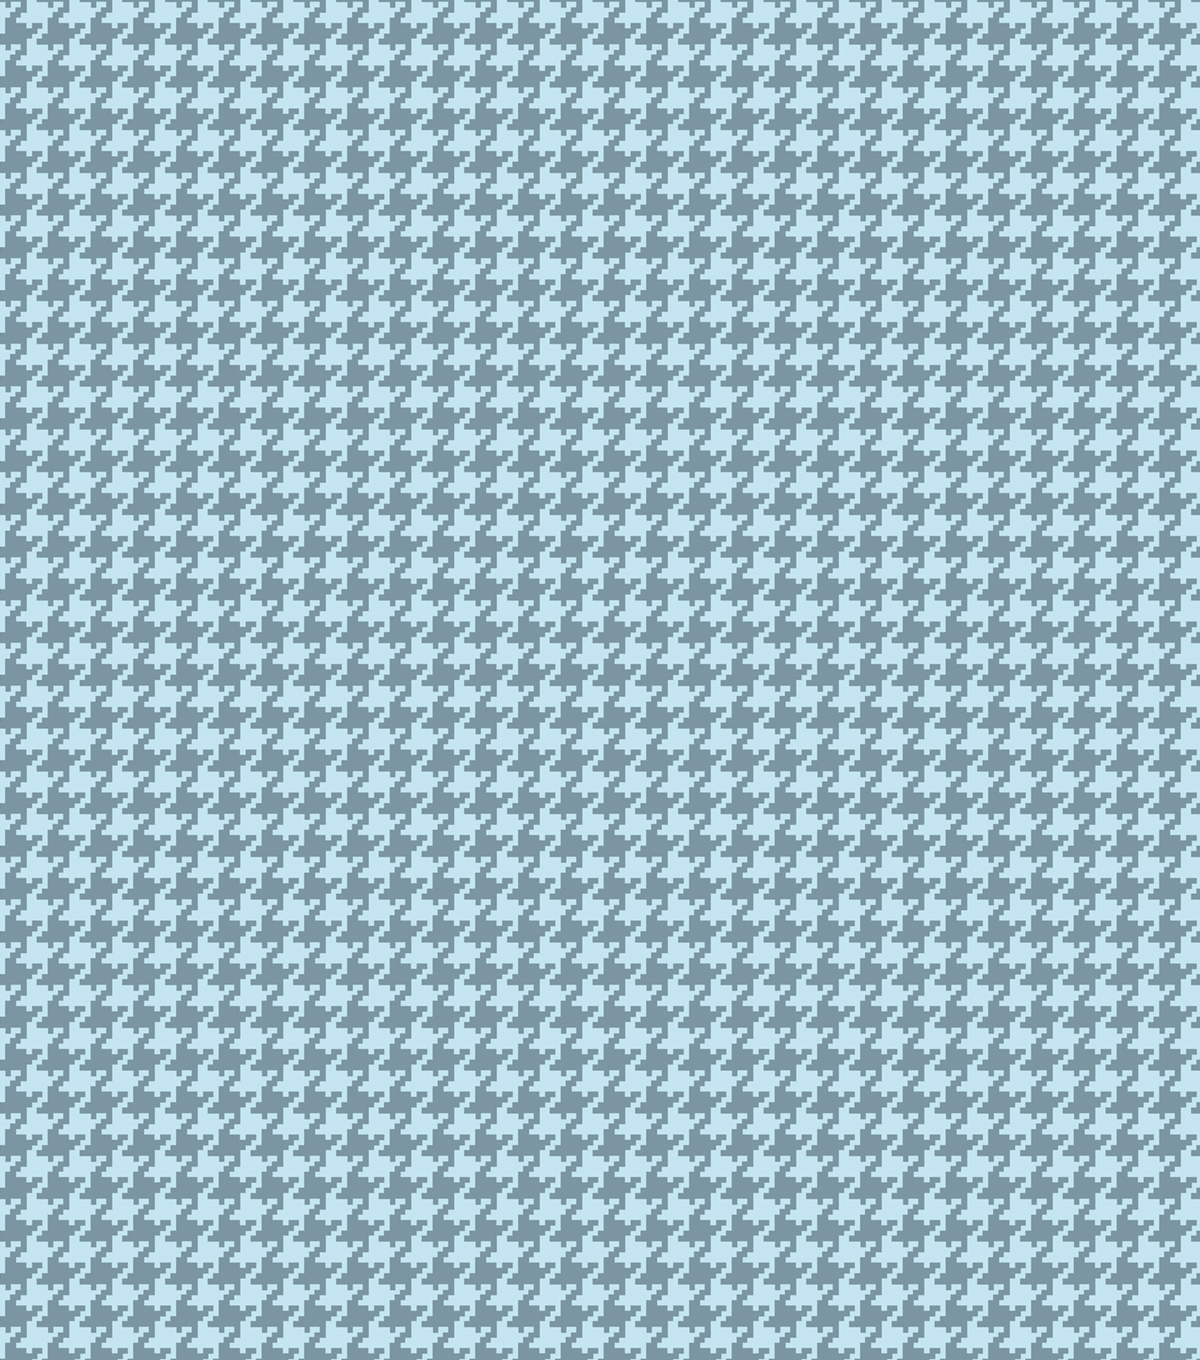 Quilt Block of the Month Coordinating Fabric 43\u0022-Teal Houndstooth